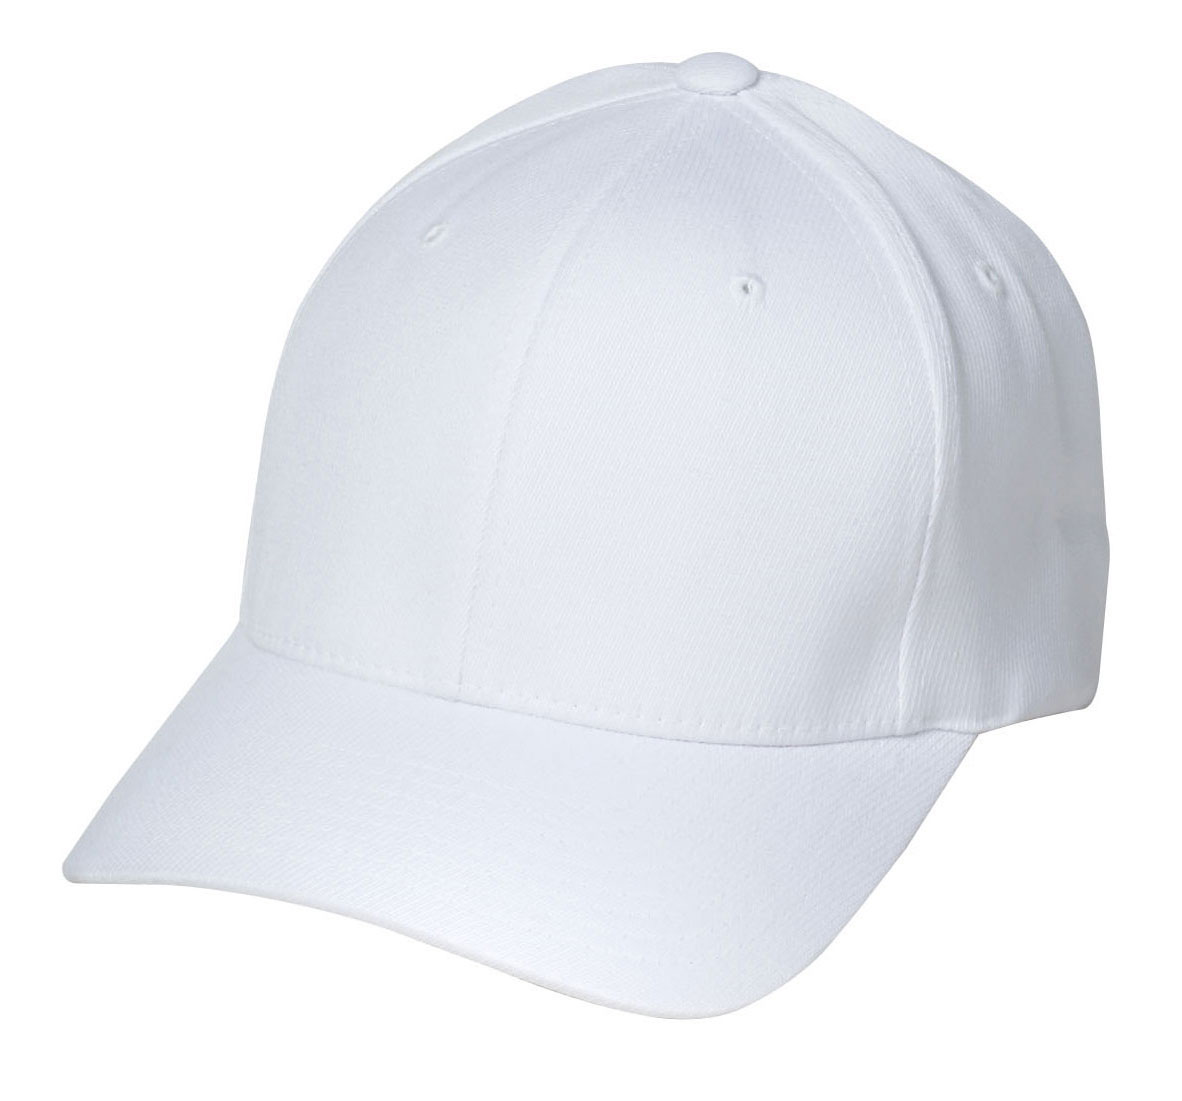 Youth Solid White Football Referee Cap